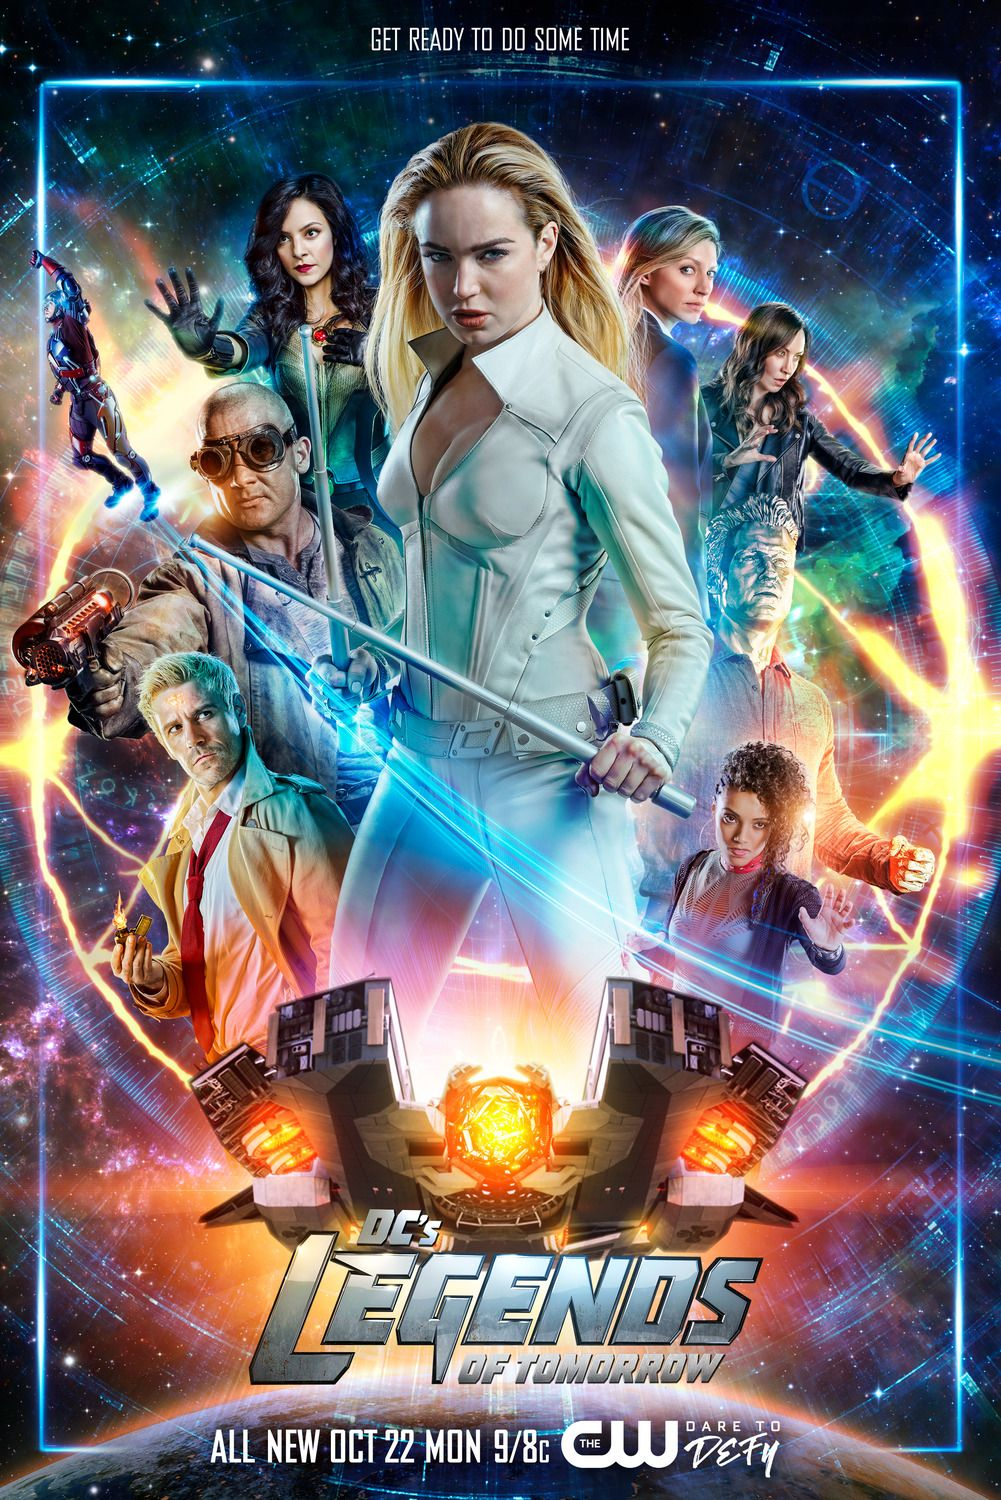 Die Superhelden Aus Legends Of Tomorrow Gehen Mit Diesem Poster In